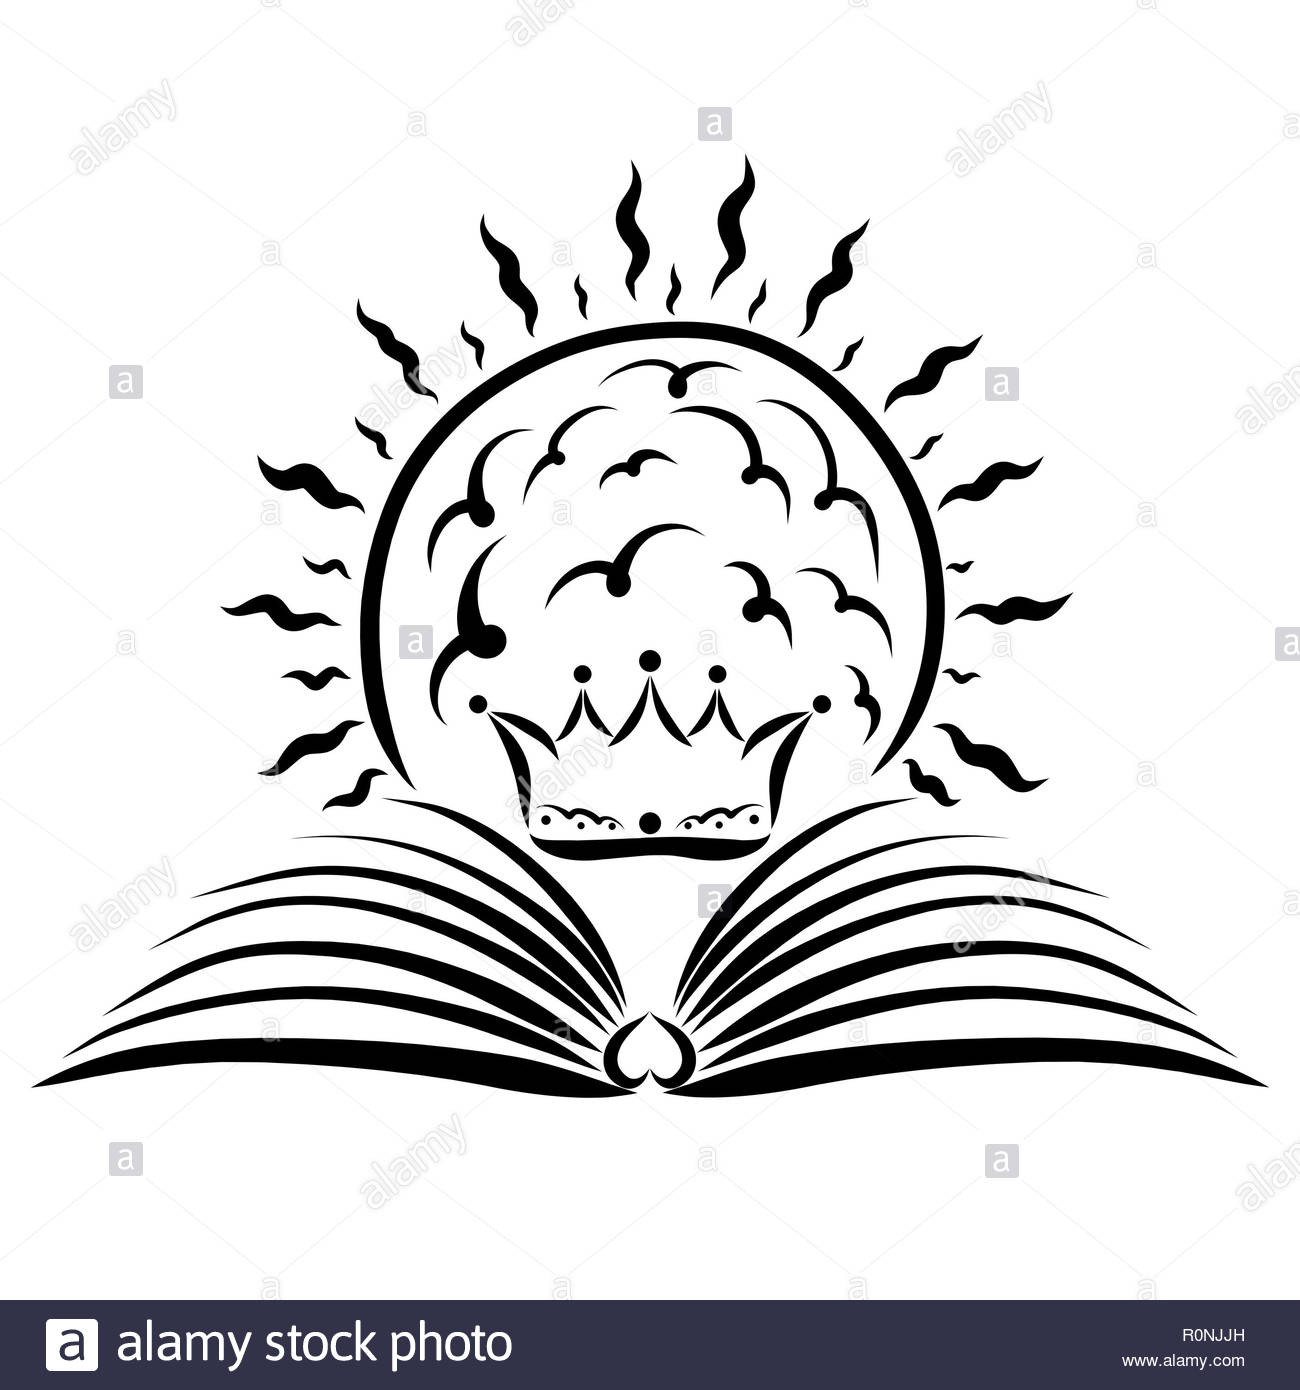 An open book, a crown and a shining sun, the light of education or truth - Stock Image